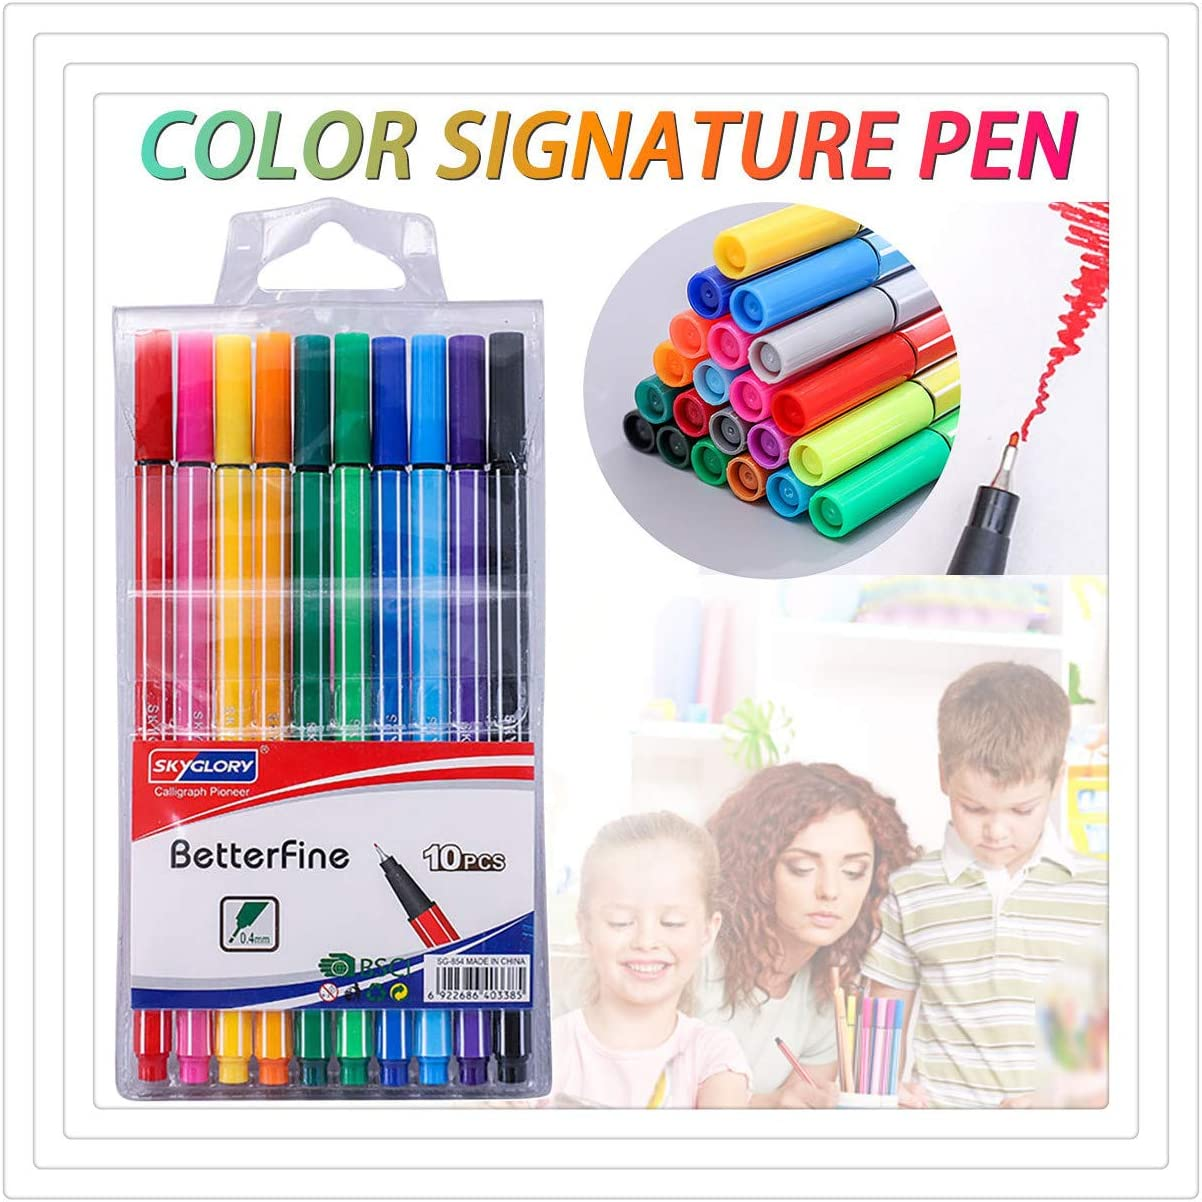 6//10 //12//24 Watercolor Painting Brushes Pen for Water Soluble Colored Pencils Water Color Markers Drawing Paint Markers for Coloring School Art Supplies Water Coloring Brush Pens